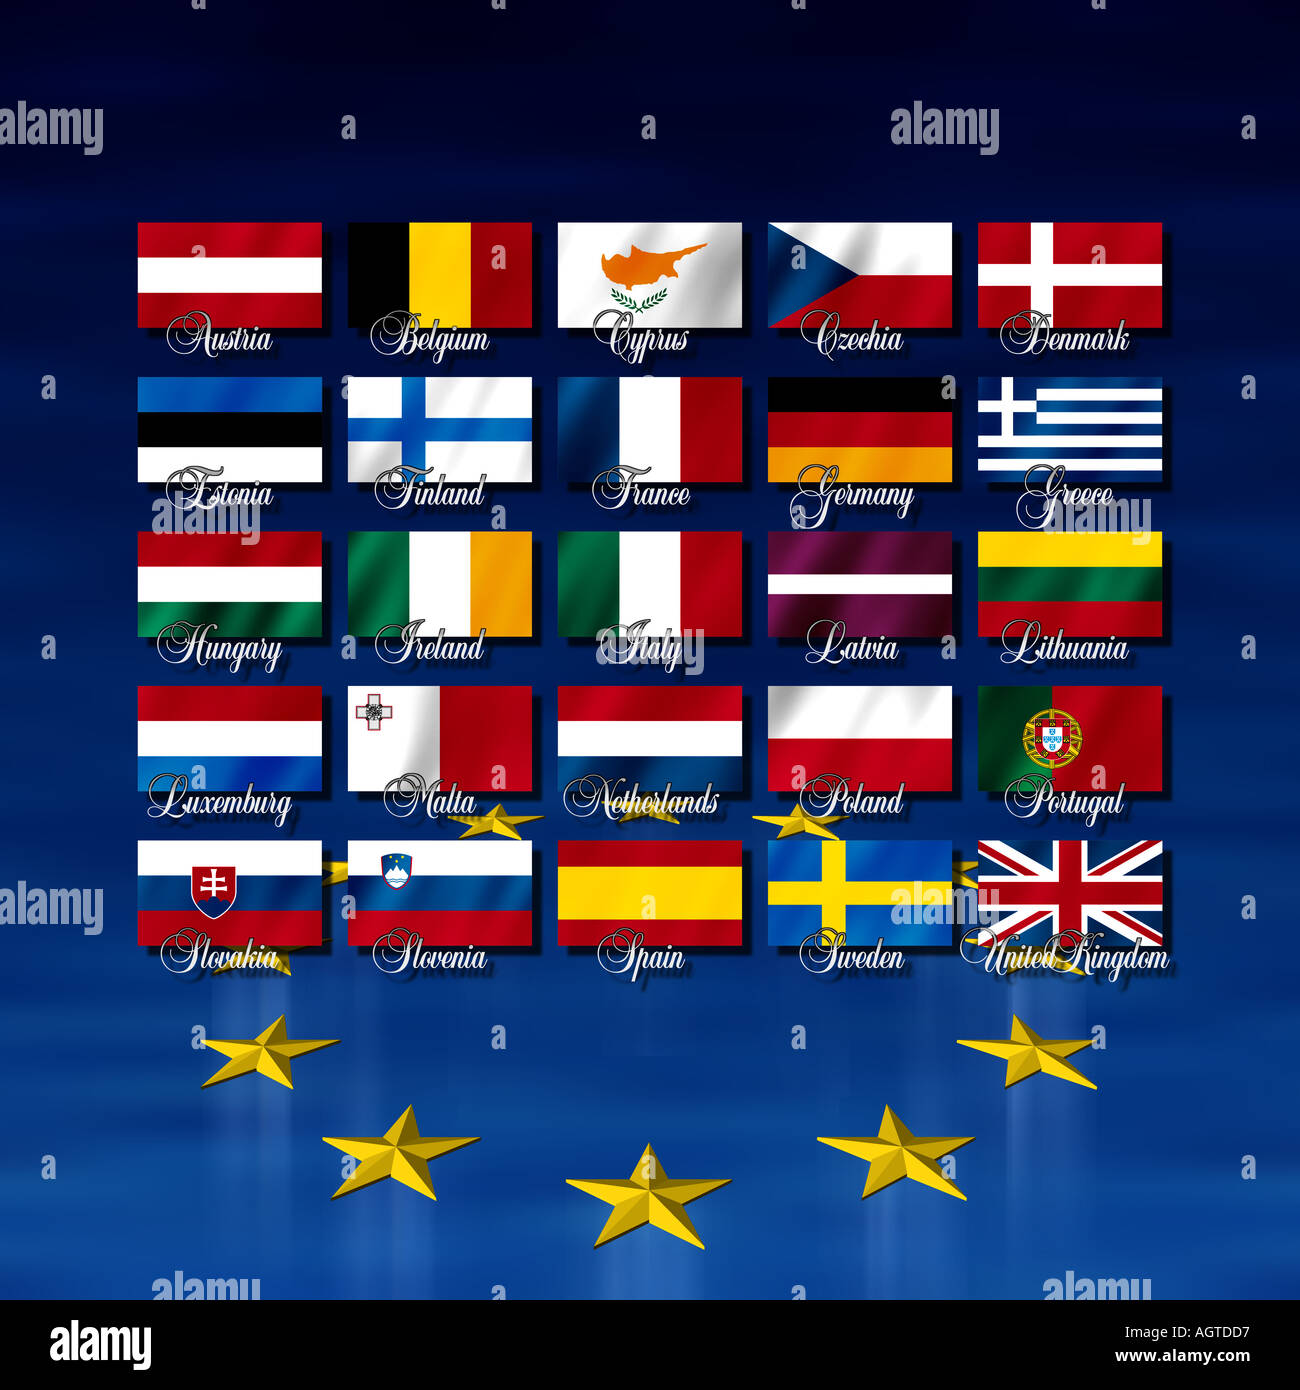 Names of the member countries of the EU